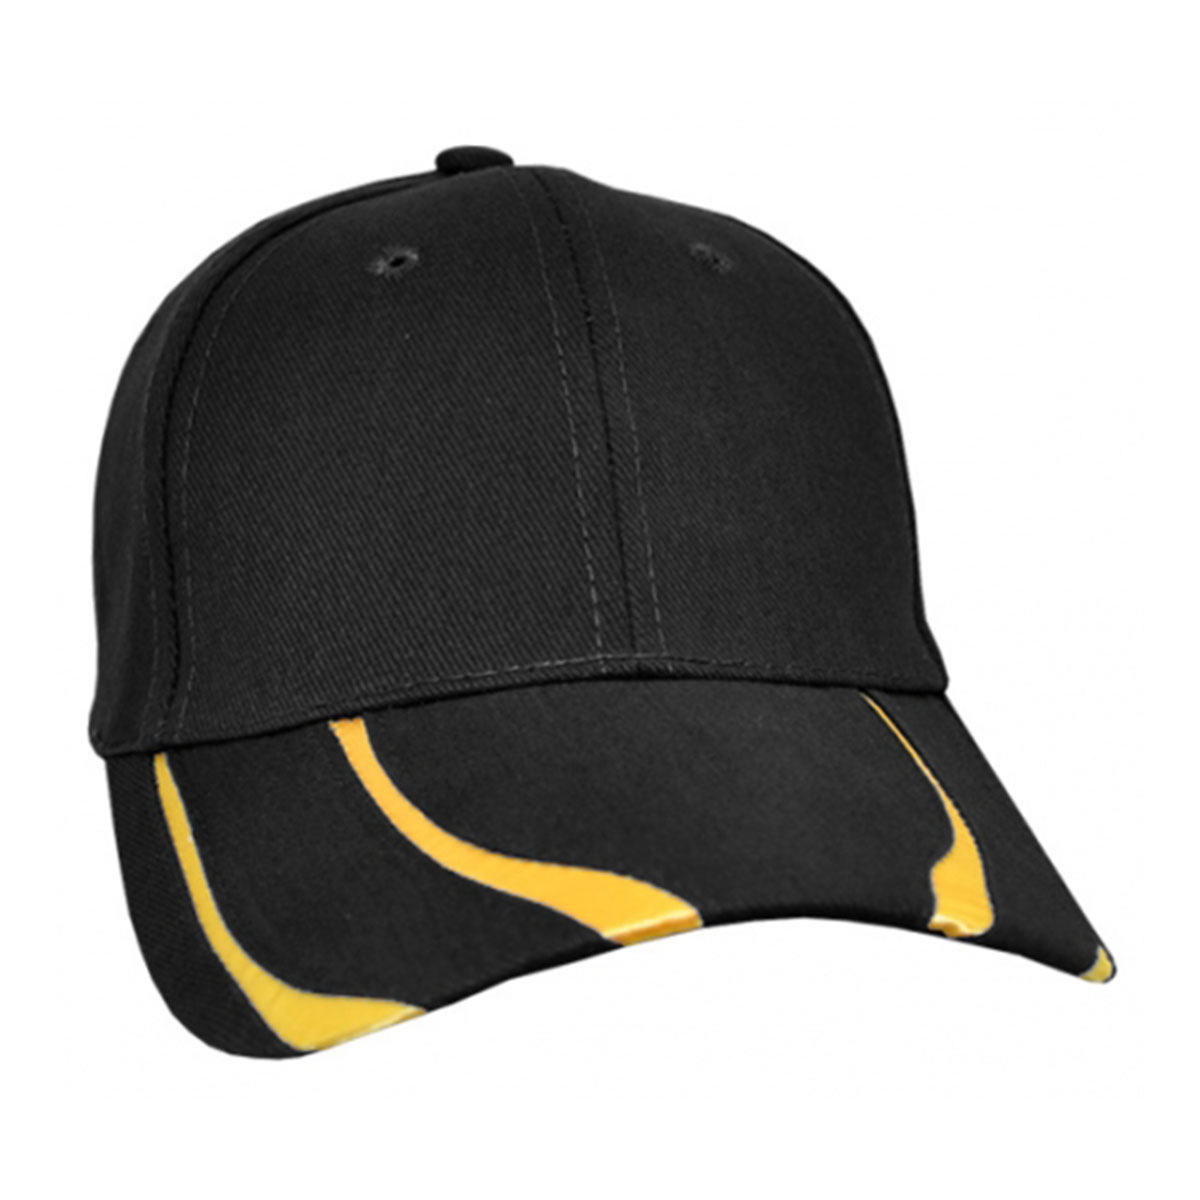 Striker Cap-Black / Gold